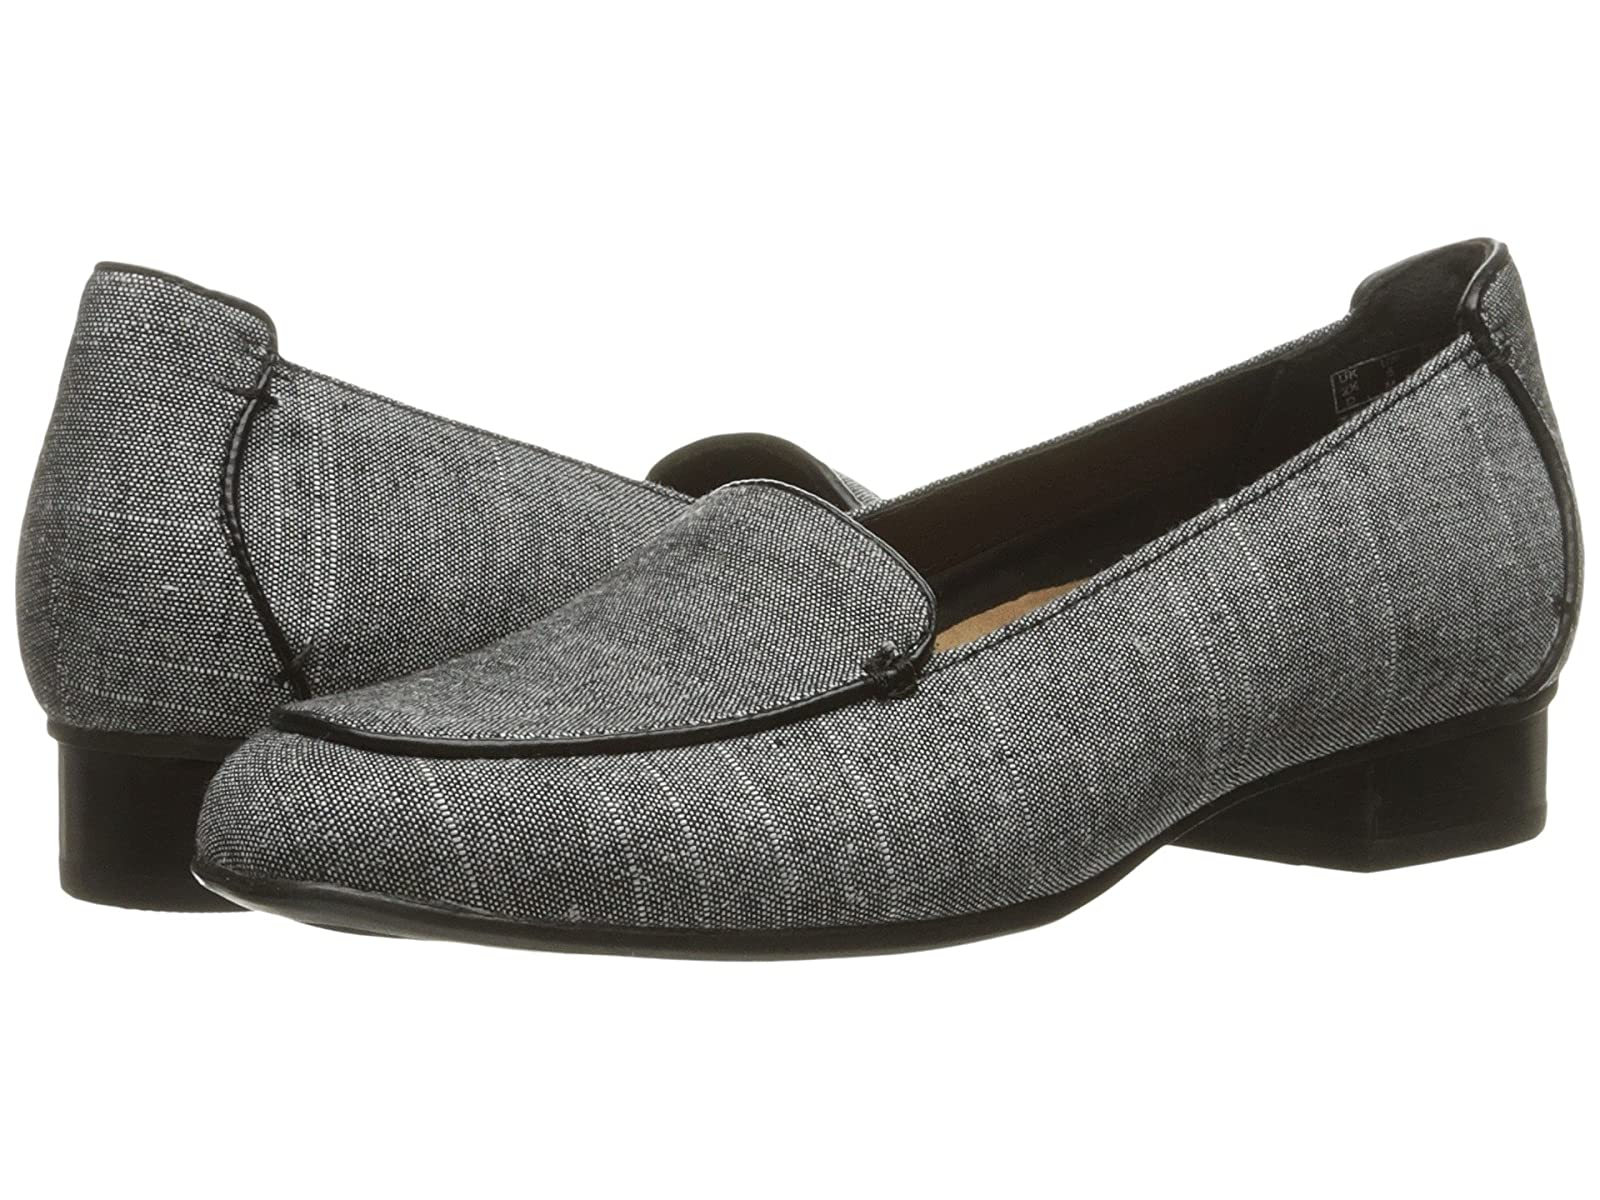 Clarks Keesha LucaCheap and distinctive eye-catching shoes